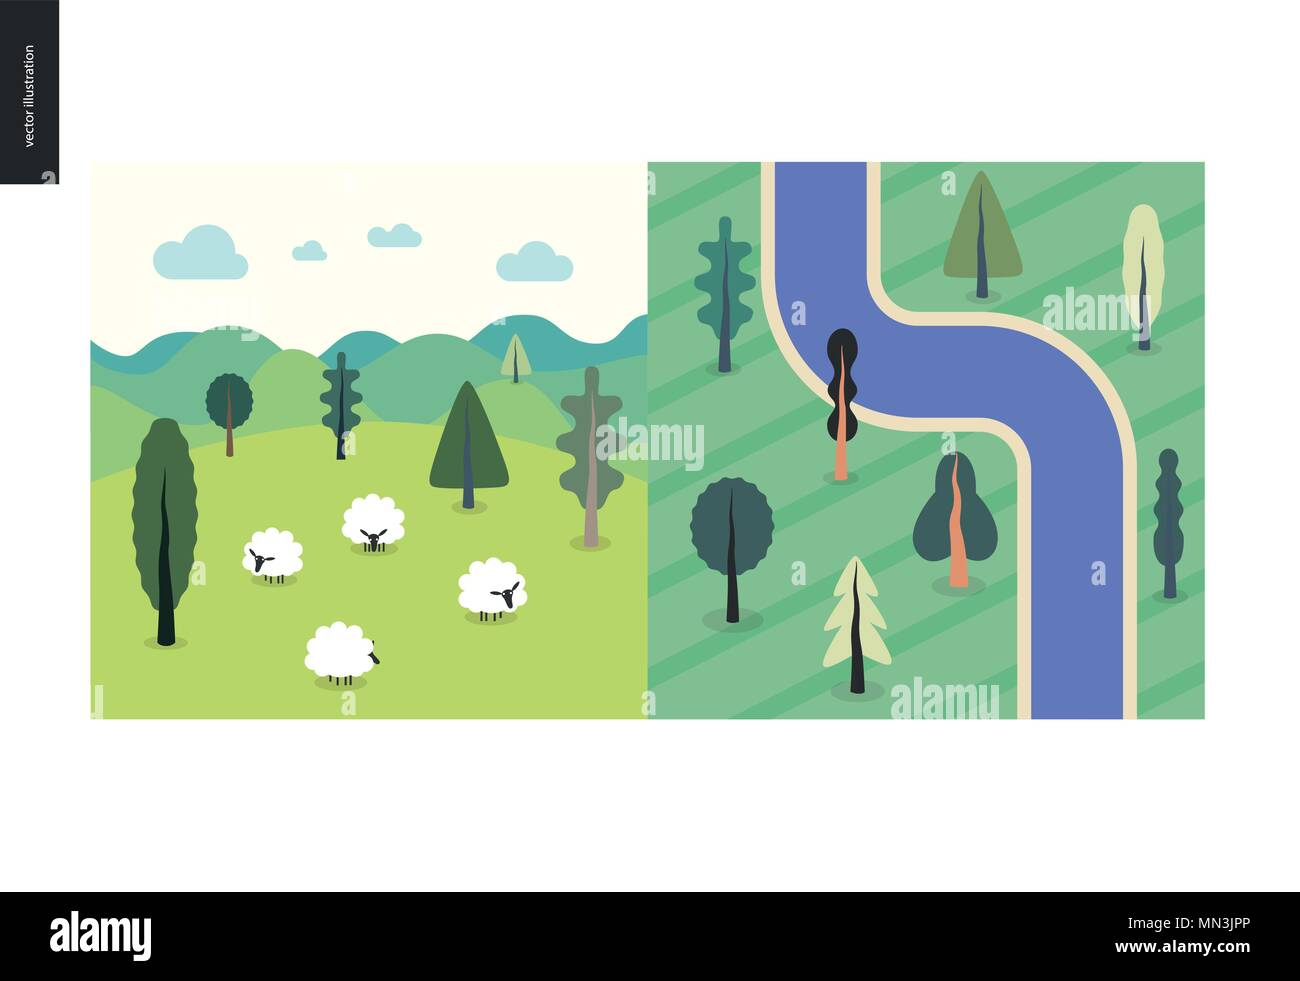 Simple Things Color Flat Cartoon Vector Illustration Of Top View Satellite Of River With Trees Field Landscape With Sheep Hills Clouds Green Stock Vector Image Art Alamy View 1,000 cartoon tree top illustration, images and graphics from +50,000 possibilities. https www alamy com simple things color flat cartoon vector illustration of top view satellite of river with trees field landscape with sheep hills clouds green image185092062 html